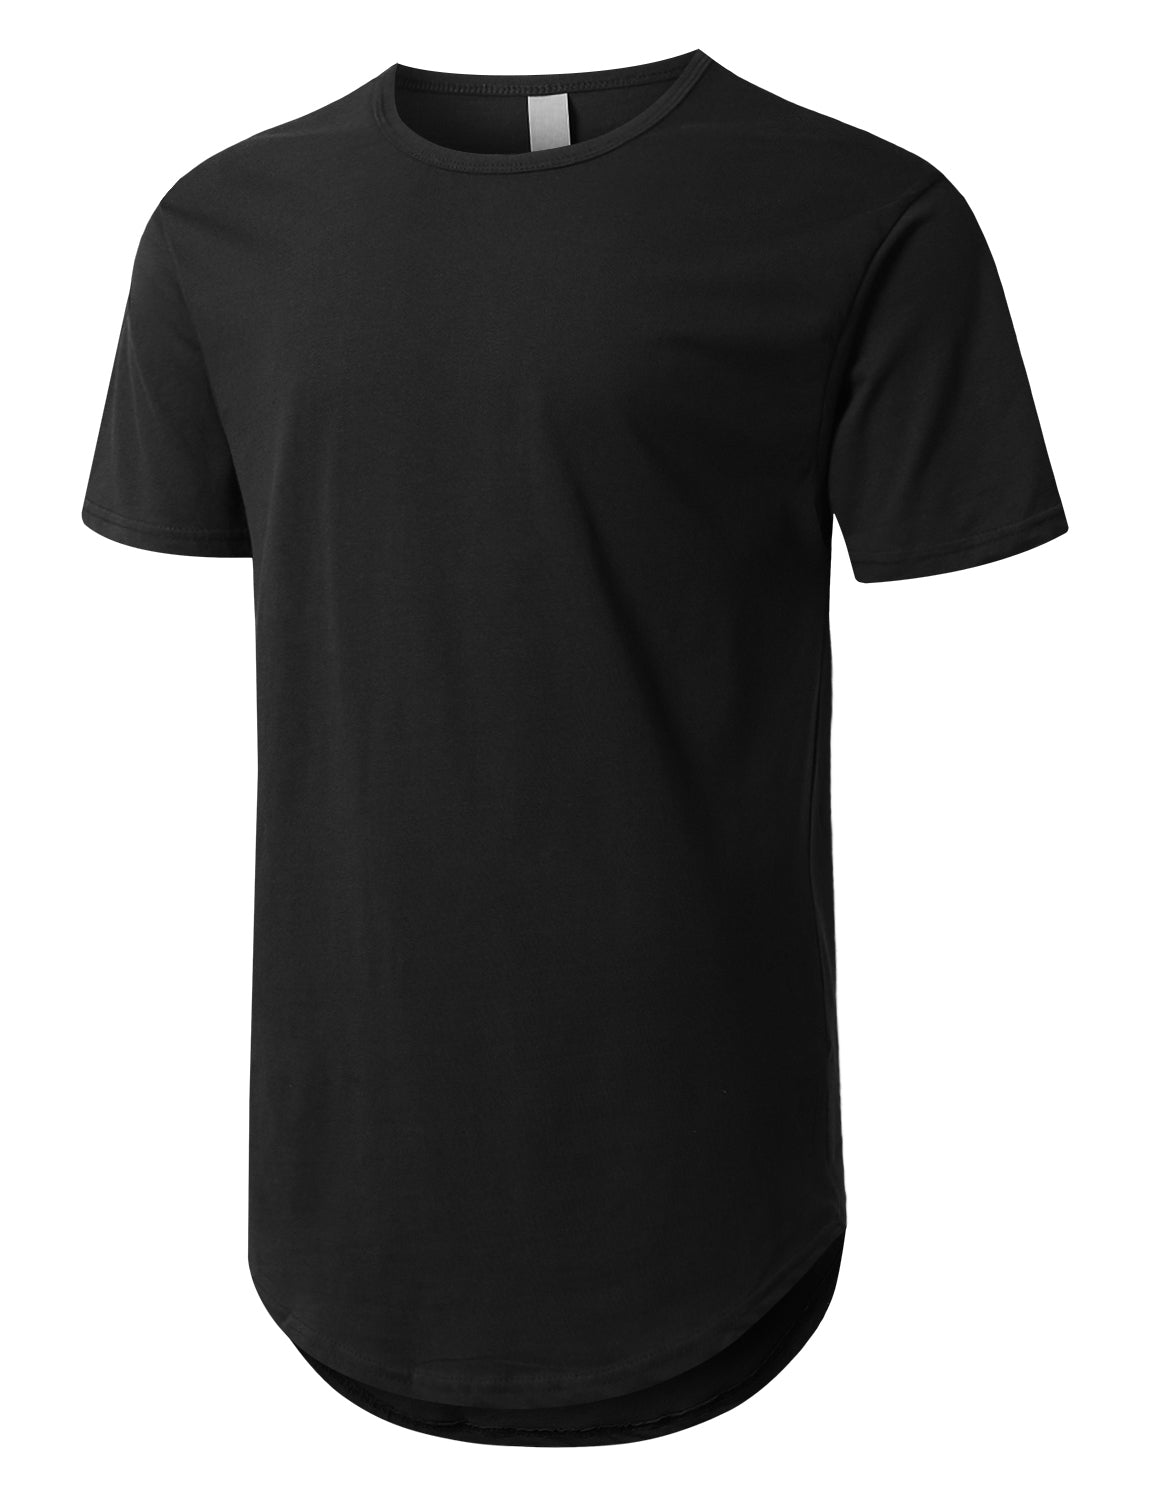 Black Crewneck Basic T-Shirts Black